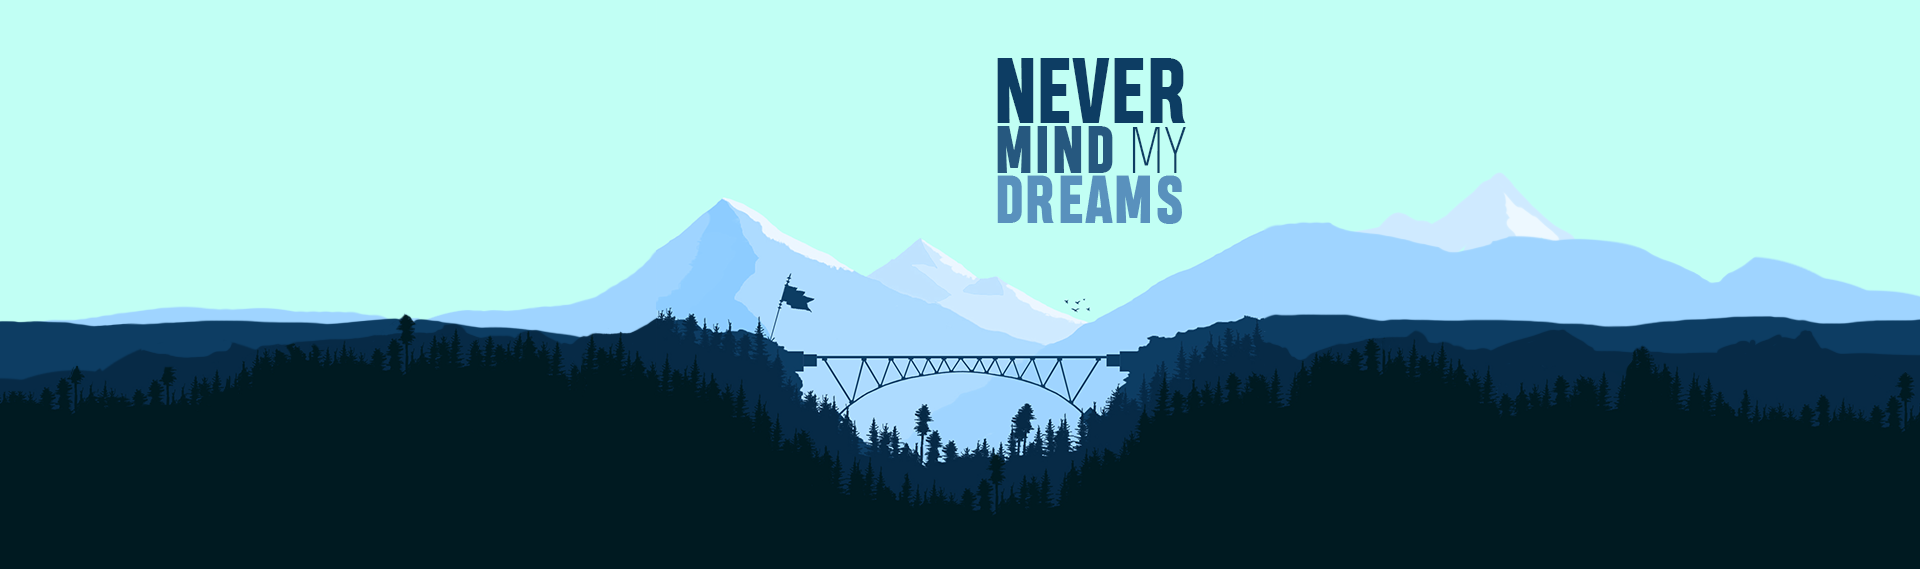 Never Mind my Dreams